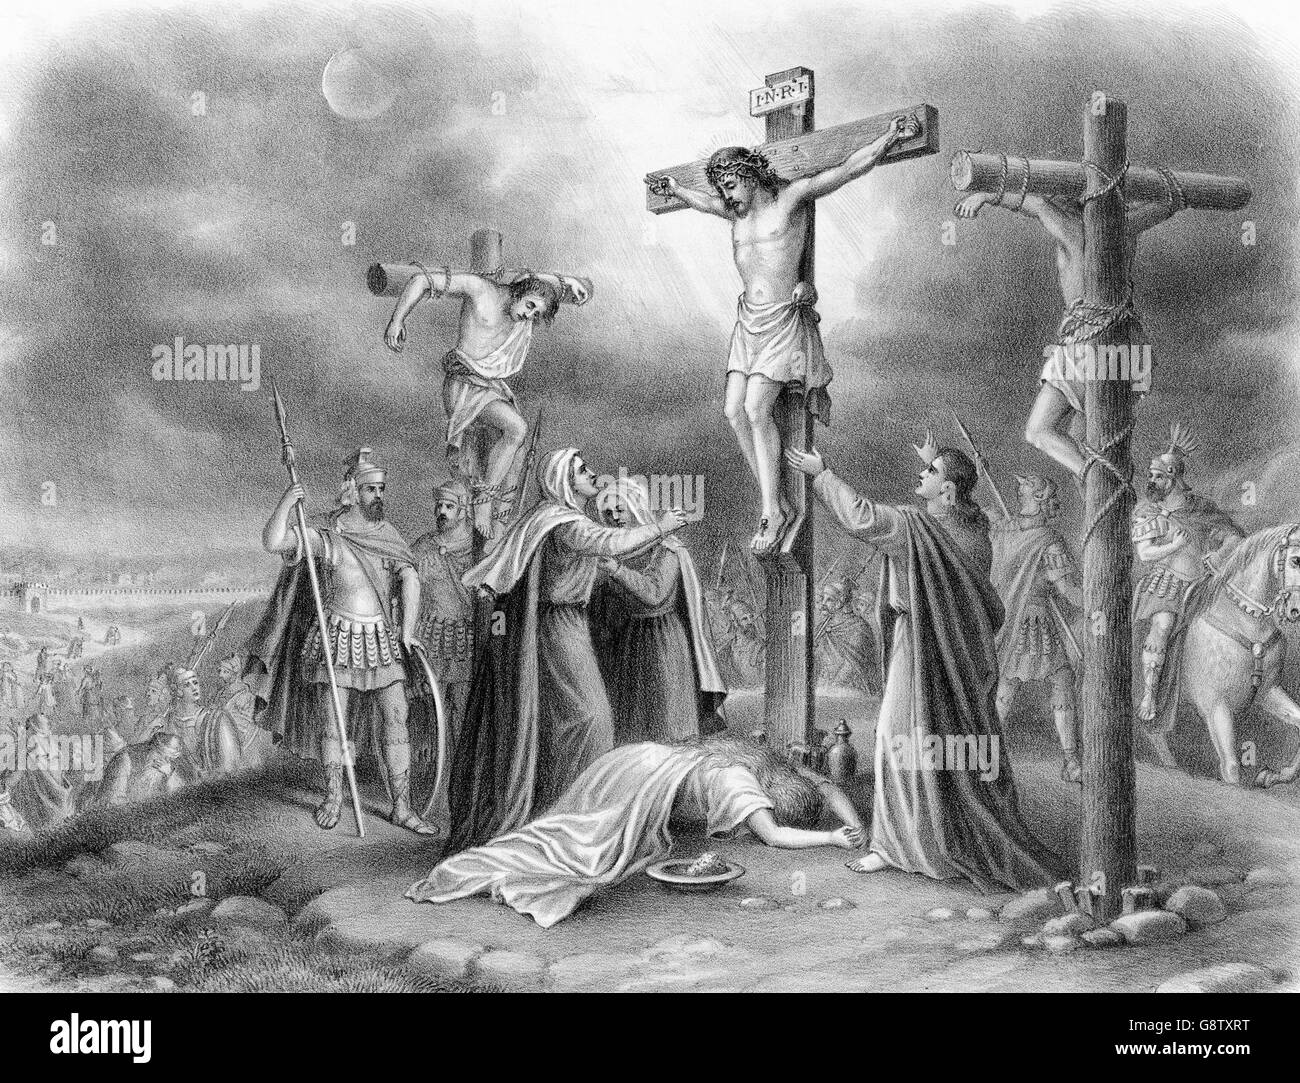 The Crucifixion of Christ. Engraving from a painting by Louis Kurz, c.1907. - Stock Image